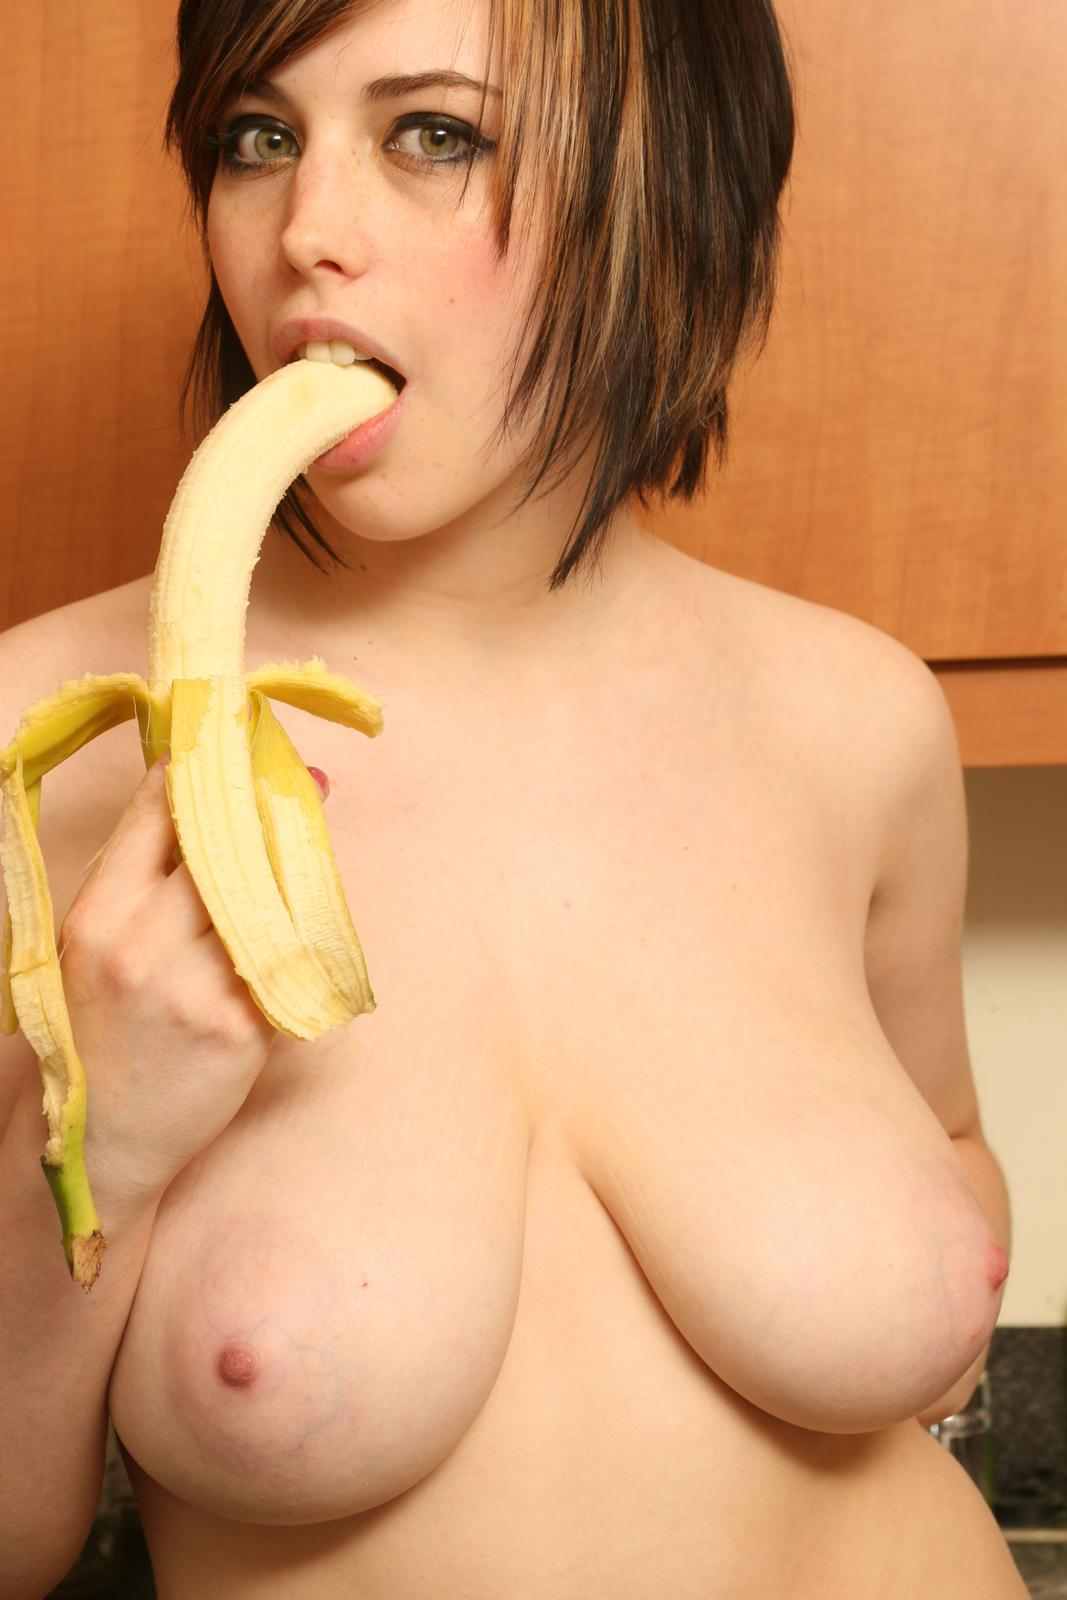 perky banana shaped tits